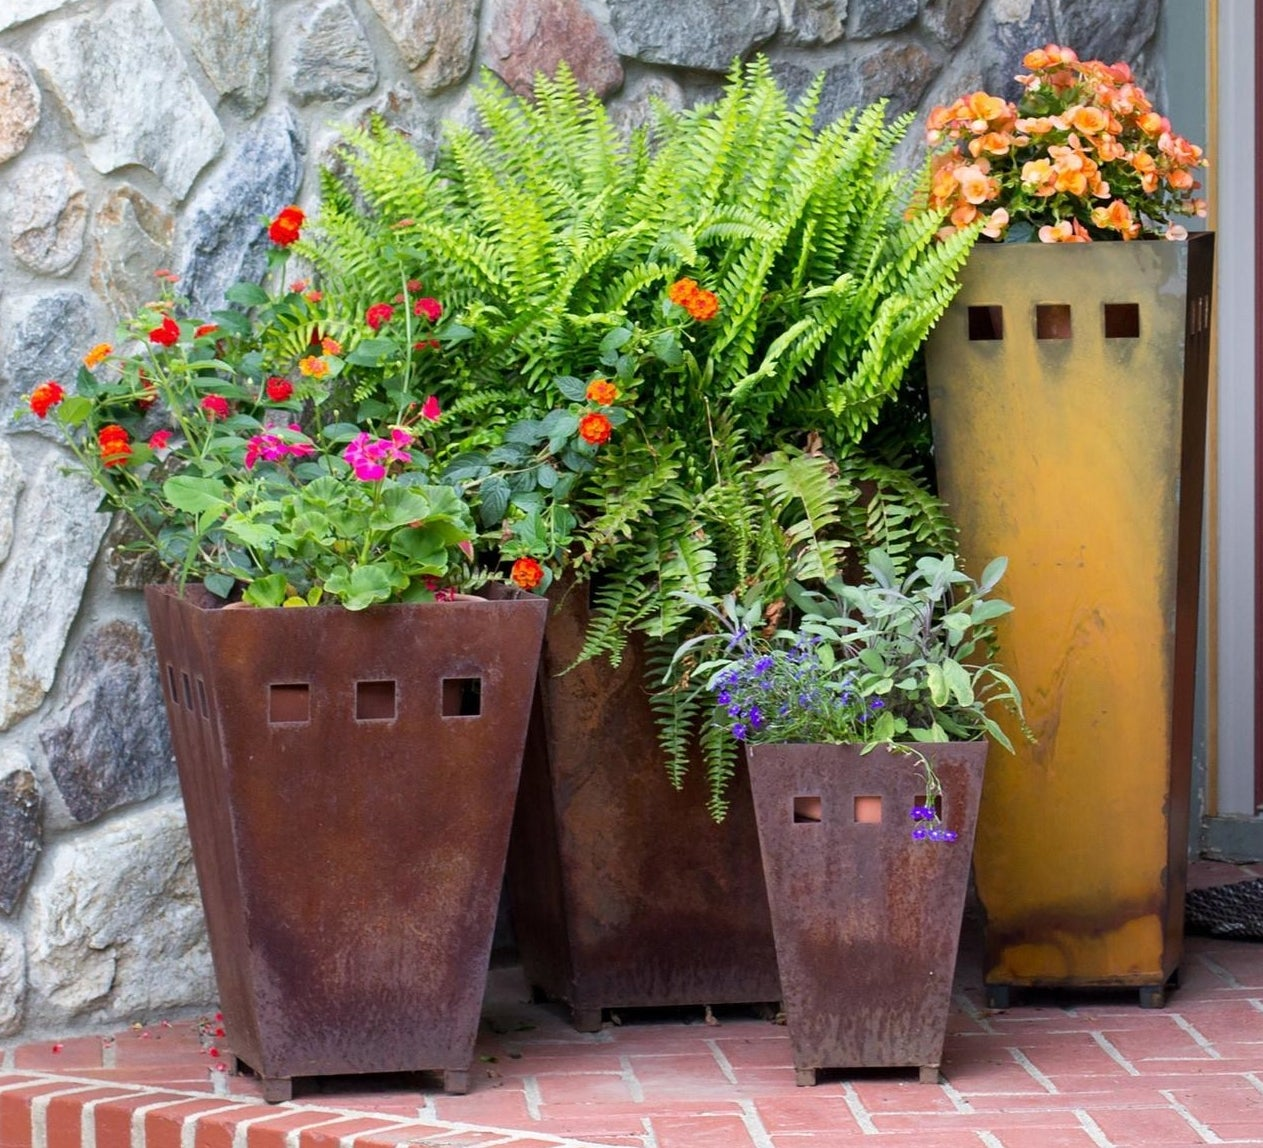 Four different sized, tall trapezoidal rusty metal outdoor planters